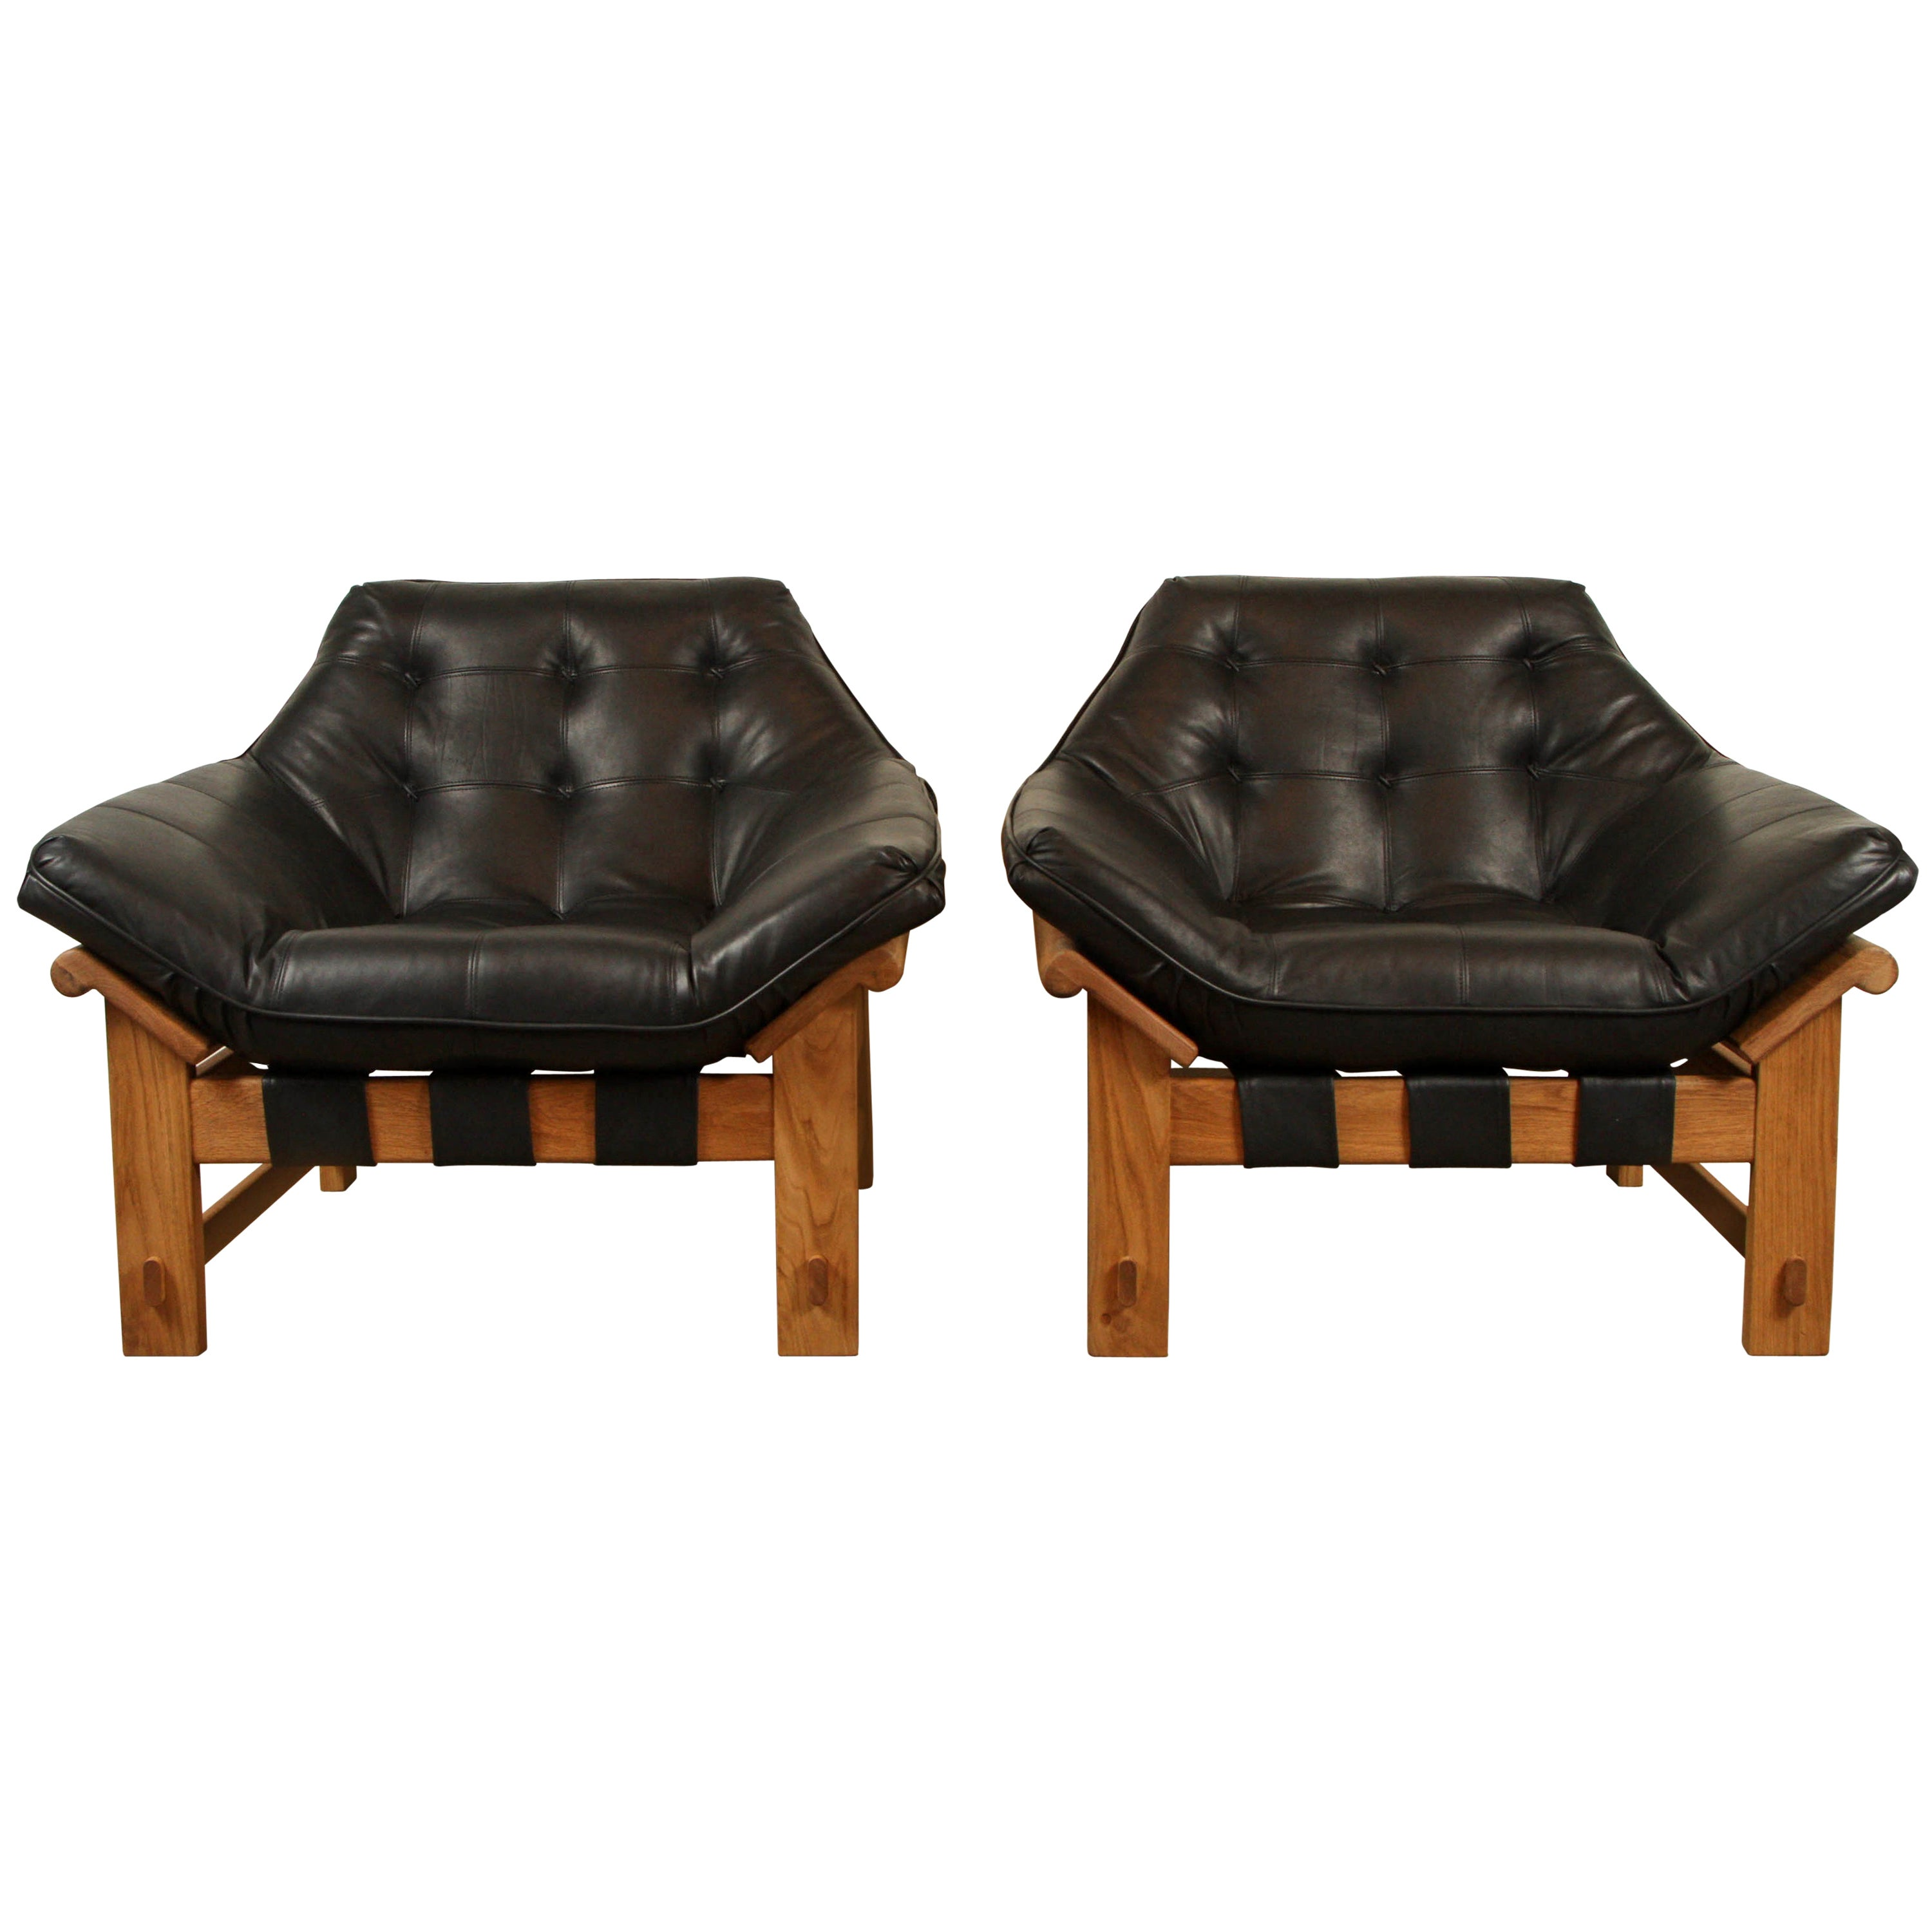 Pair of Ojai Lounge Chairs by Lawson-Fenning